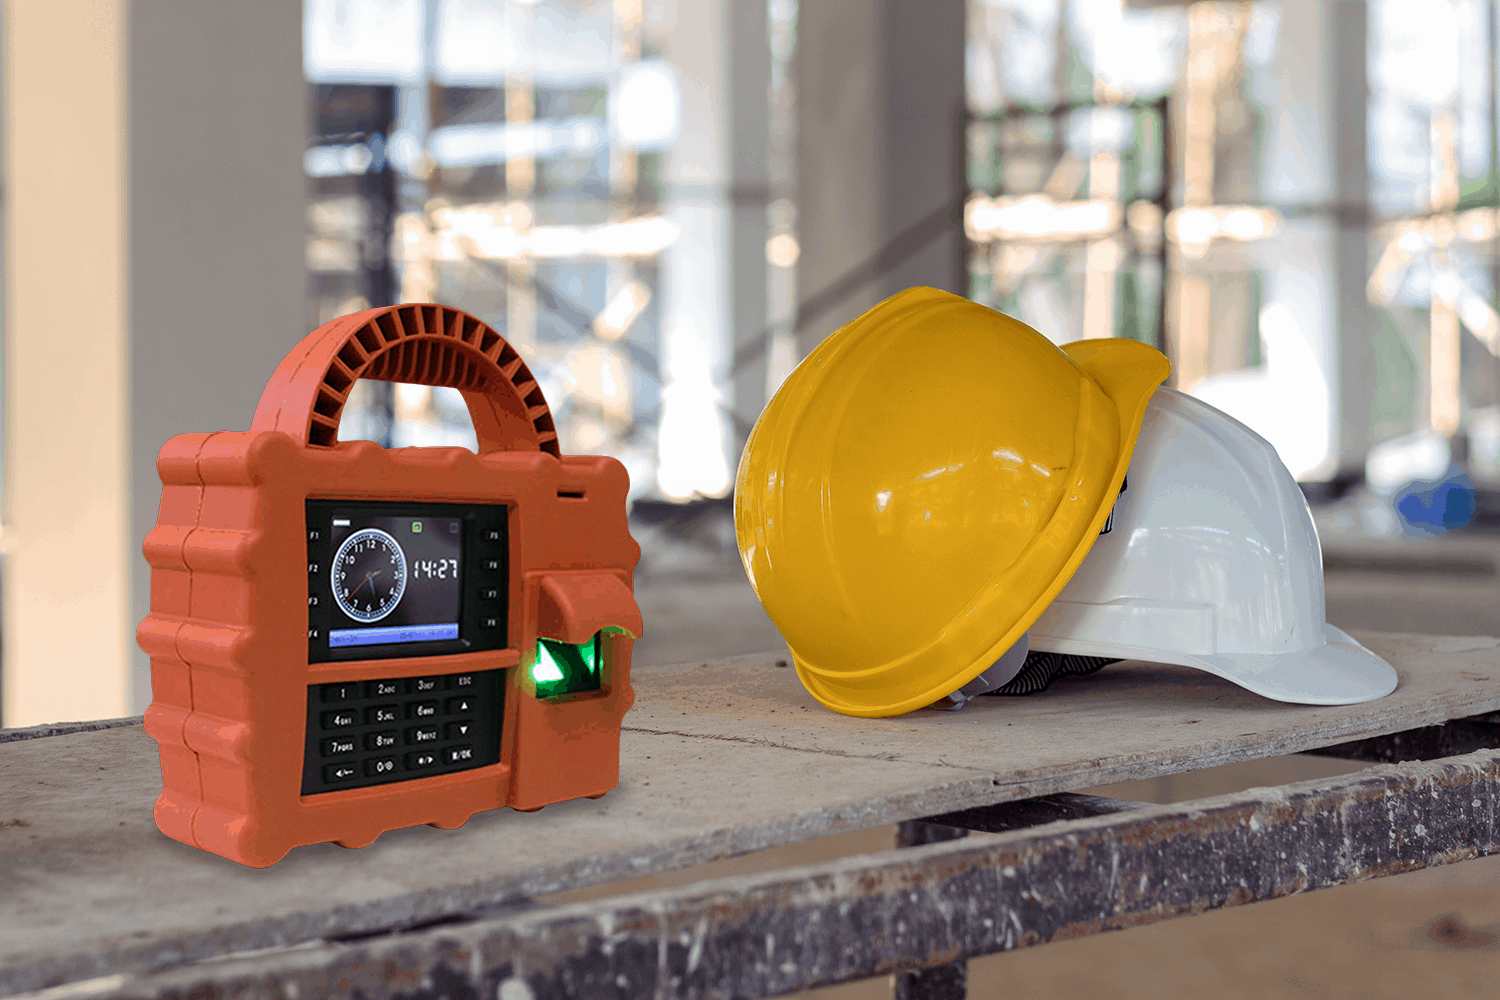 S922 portable fingerprint scanner at a construction site